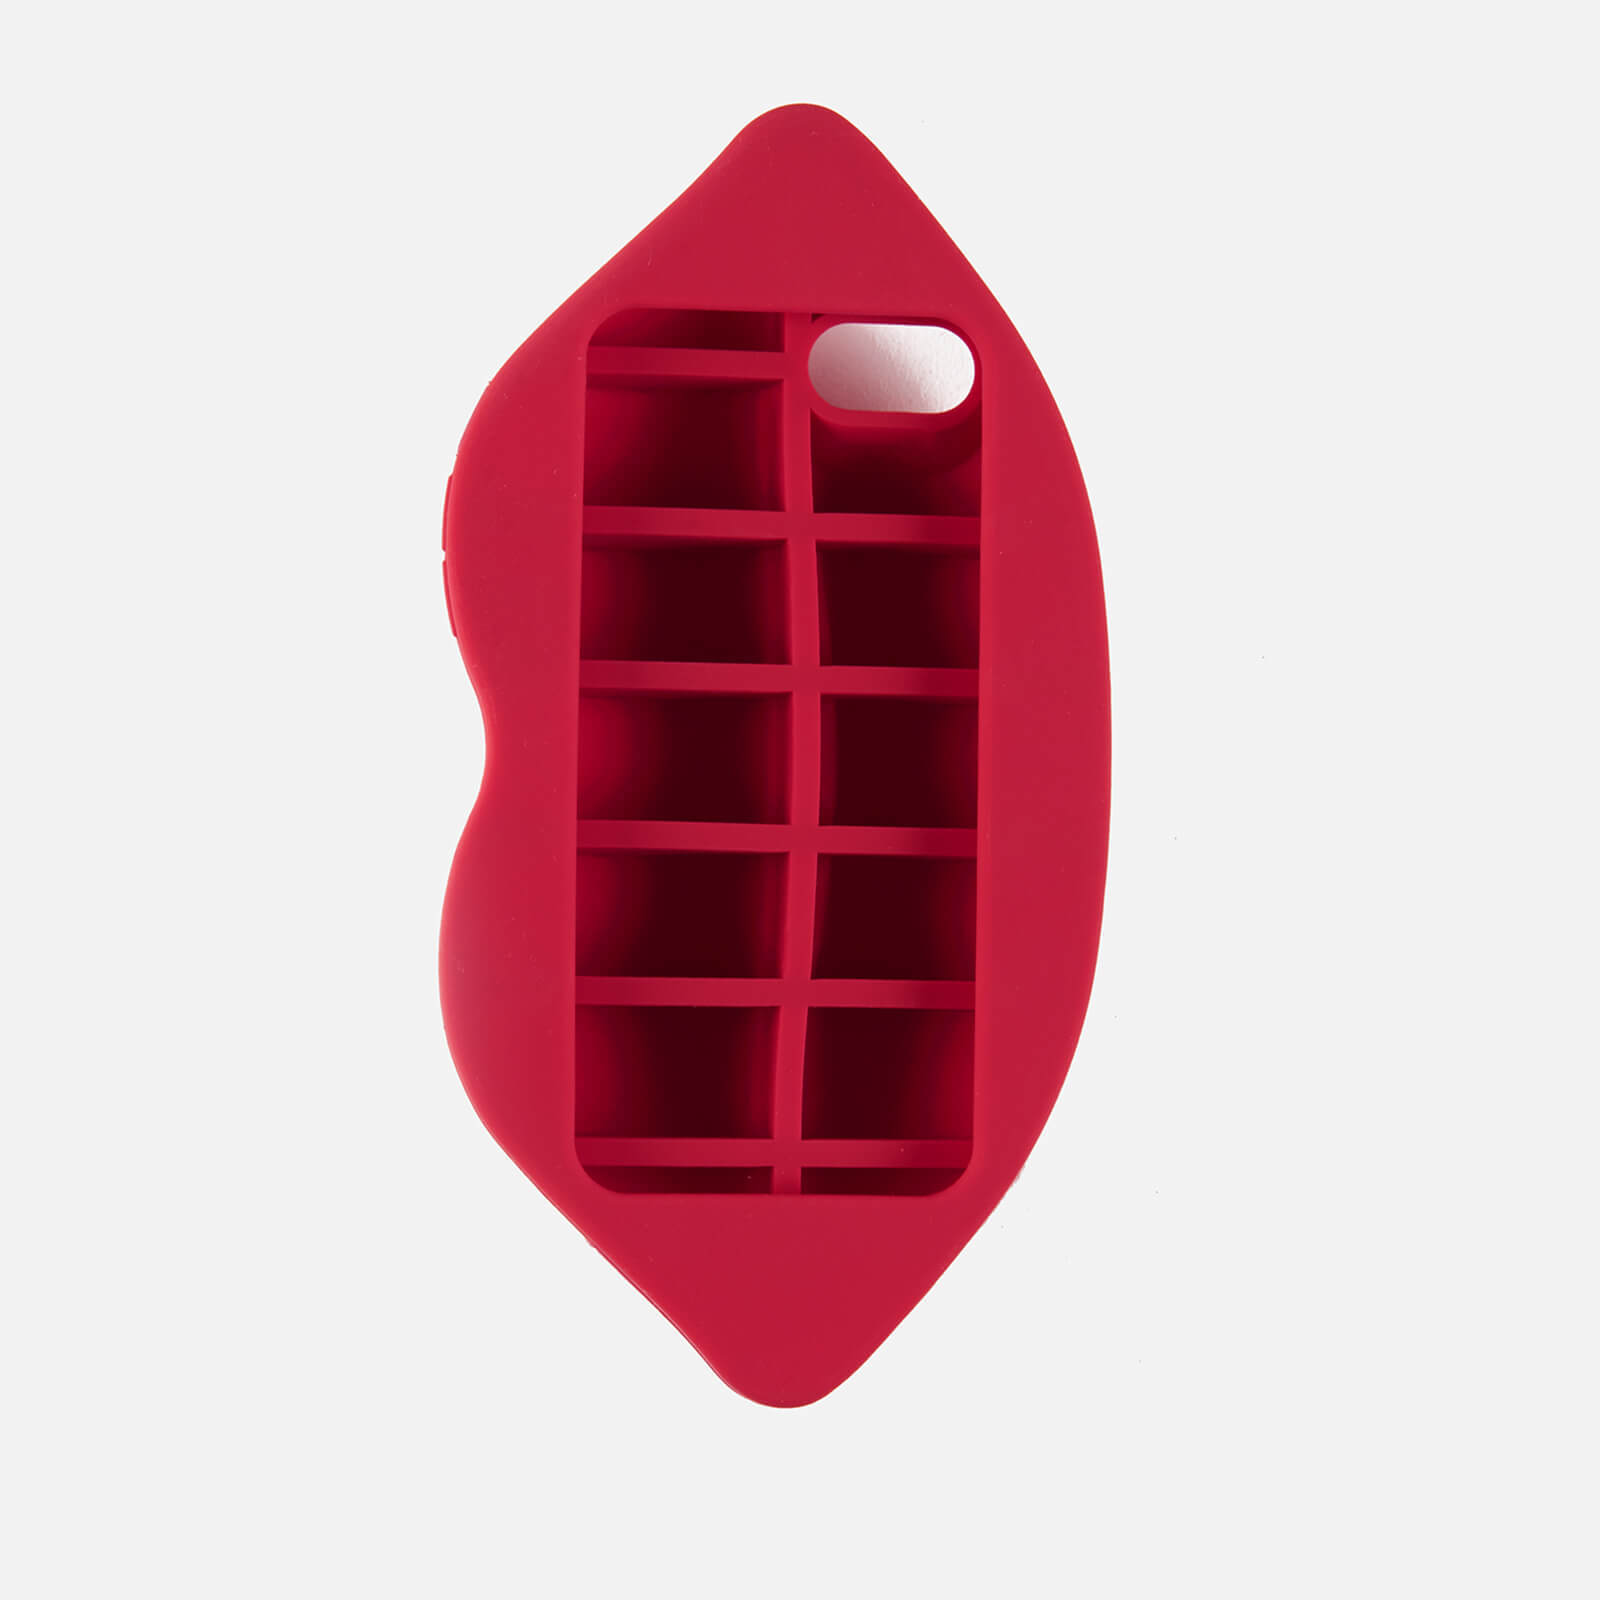 関送込【Lulu Guinness】Red Lipデザイン★iPhone7ケース*Red